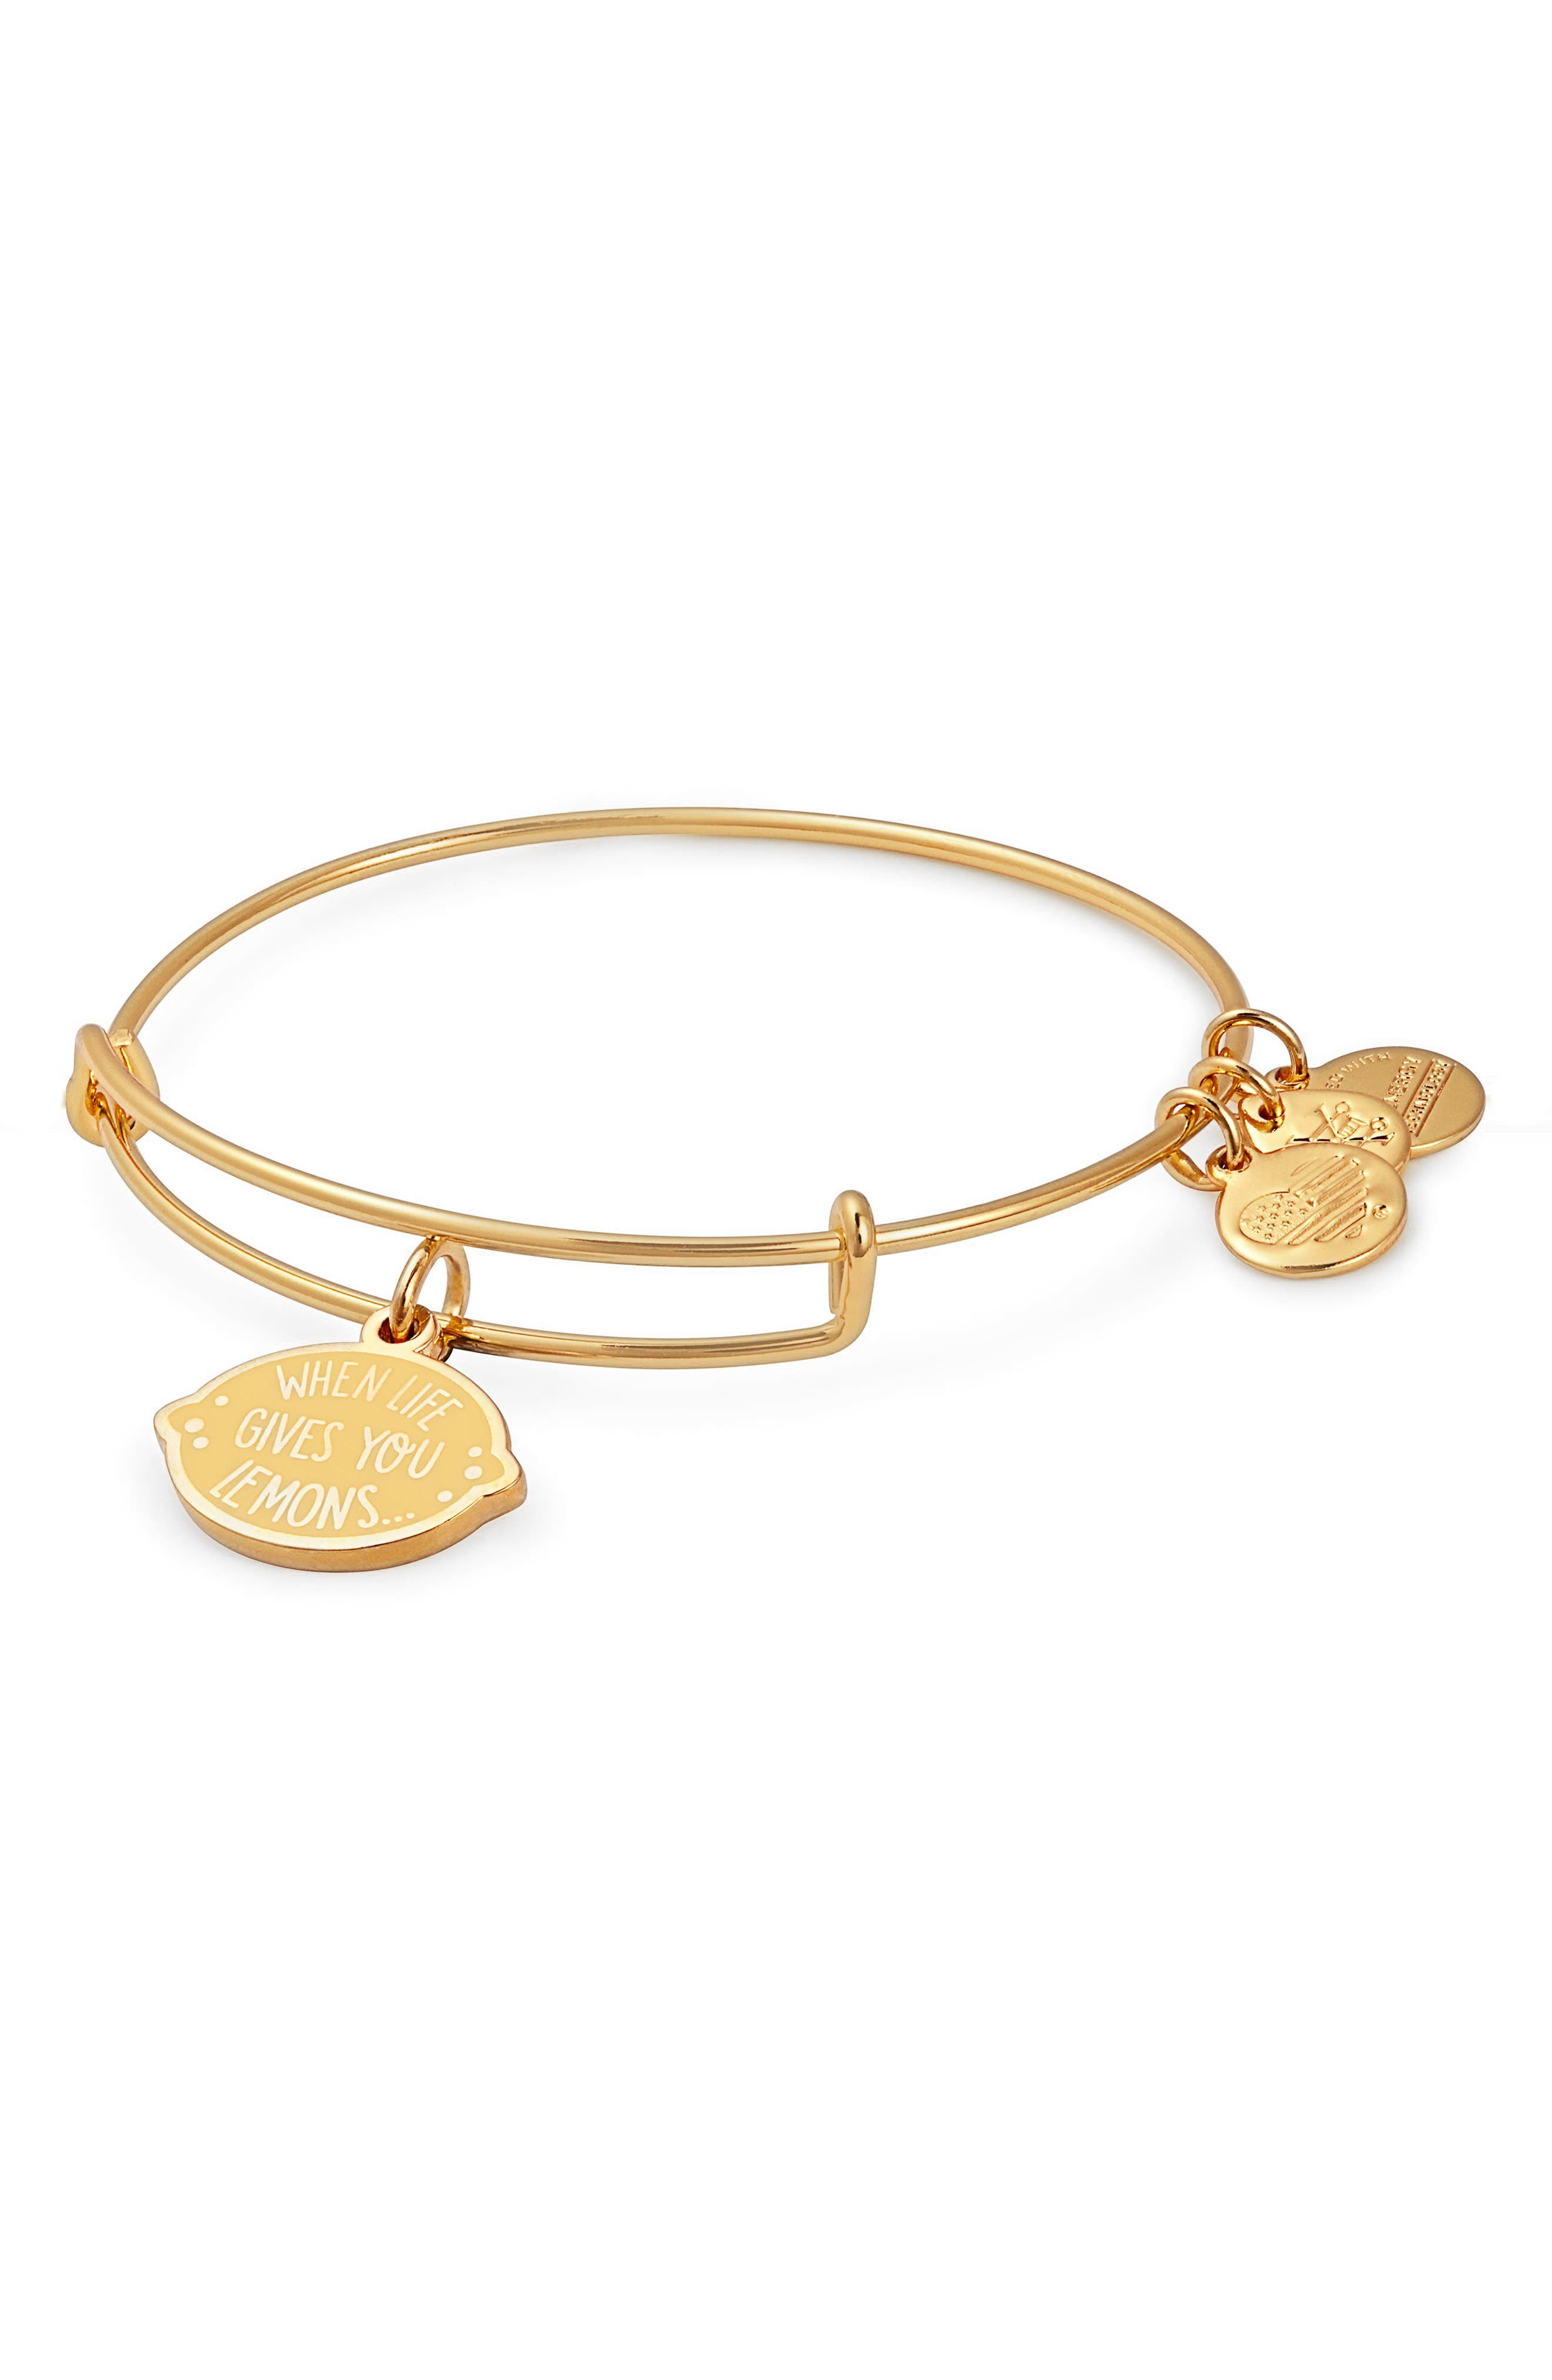 Charity by Design When Life Gives You Lemons Charm Bracelet,                             Main thumbnail 1, color,                             Gold